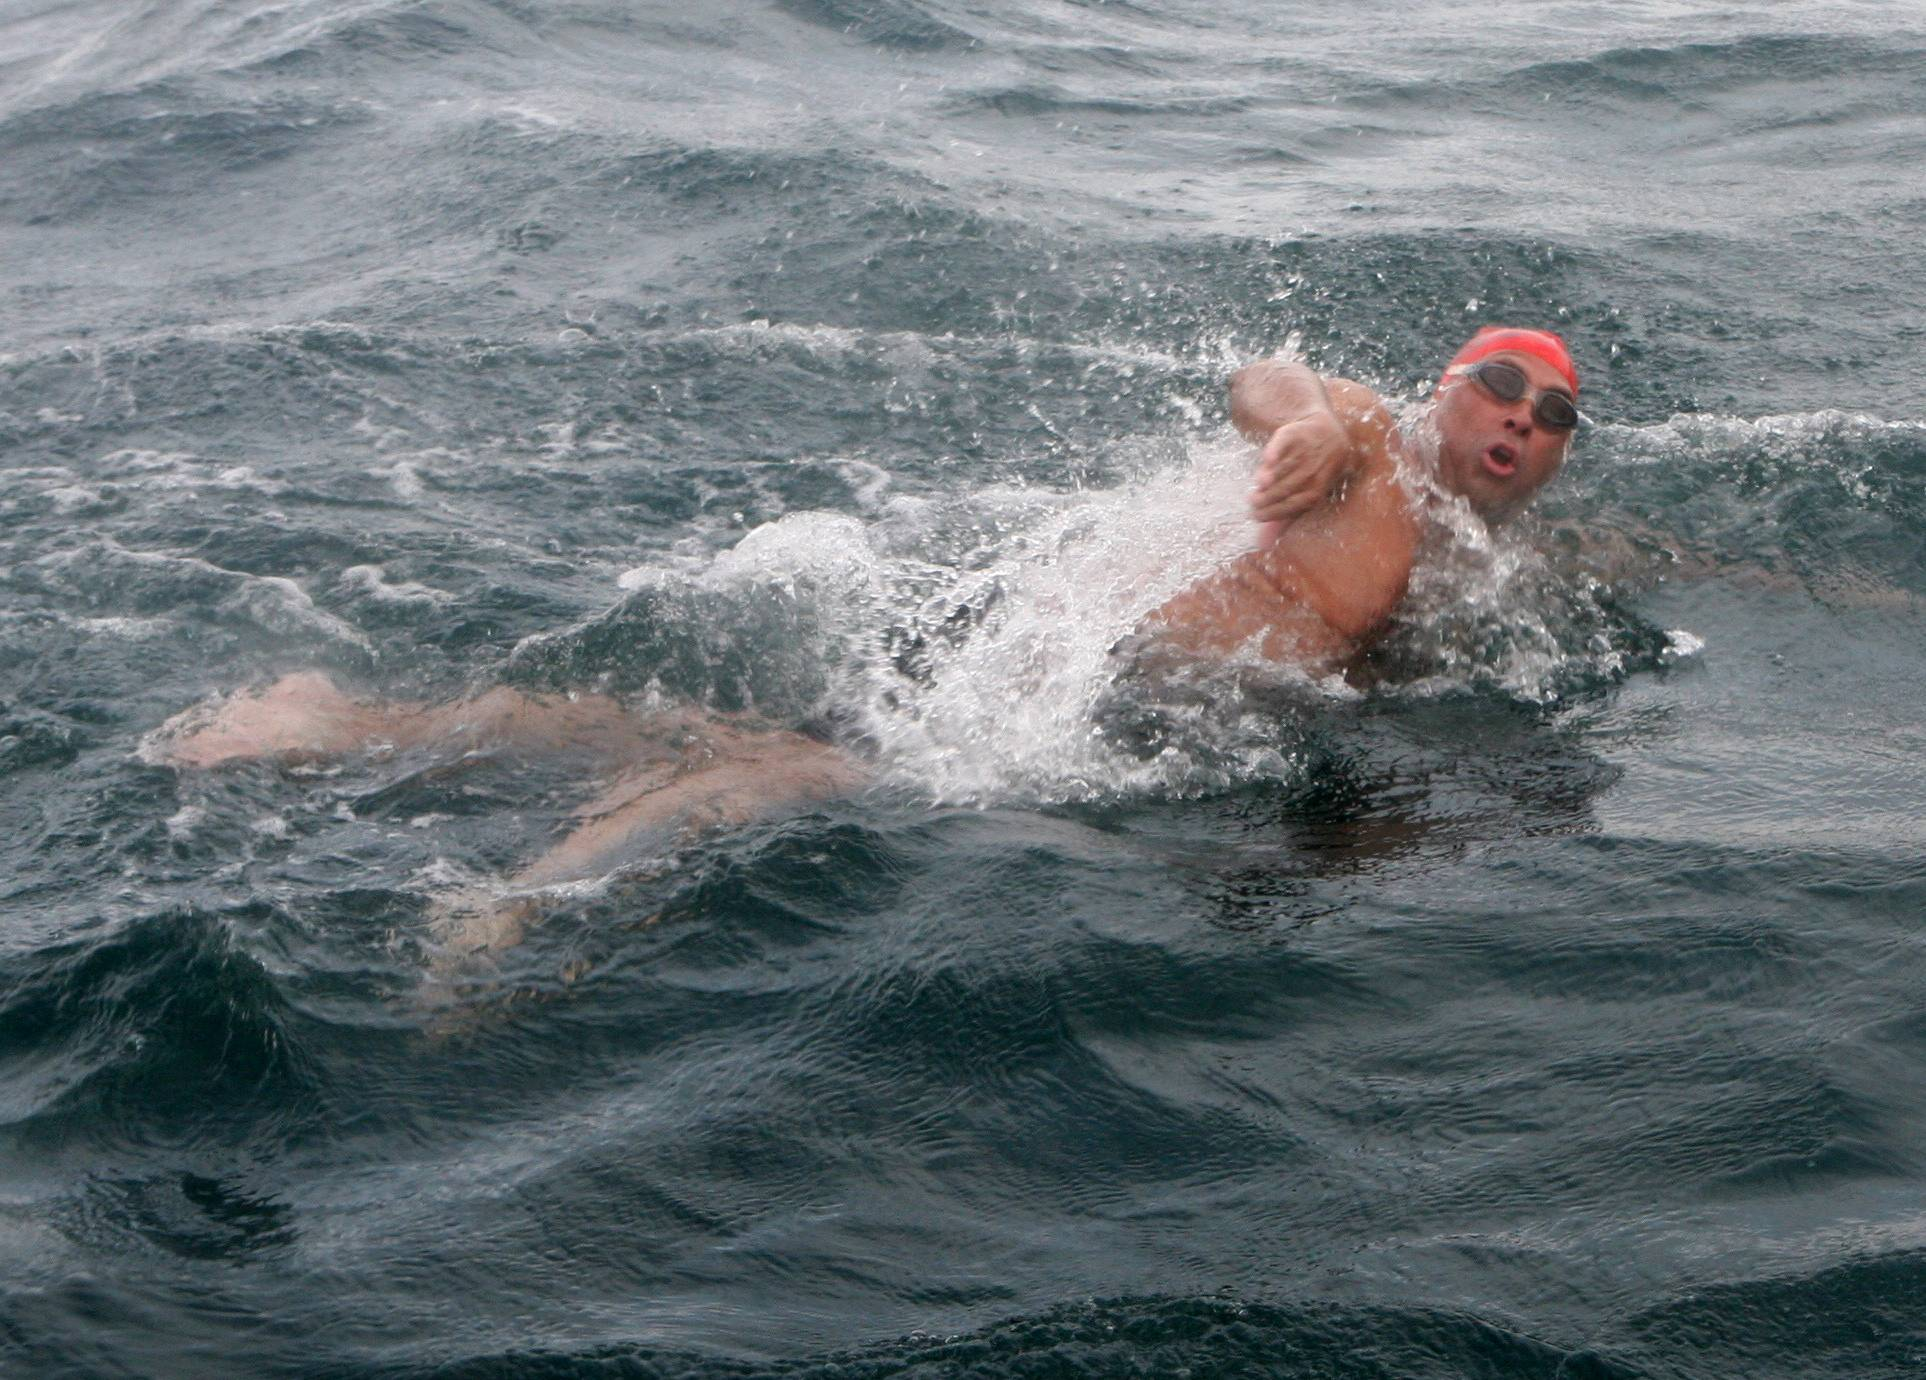 Doug McConnell, shown here during his successful swim across the English Channel in 2011, is now focusing on another challenge: a lap around Manhattan Island, New York. McConnell's is using the swim to raise money for the fight against ALS, also known as Lou Gehrig's disease.